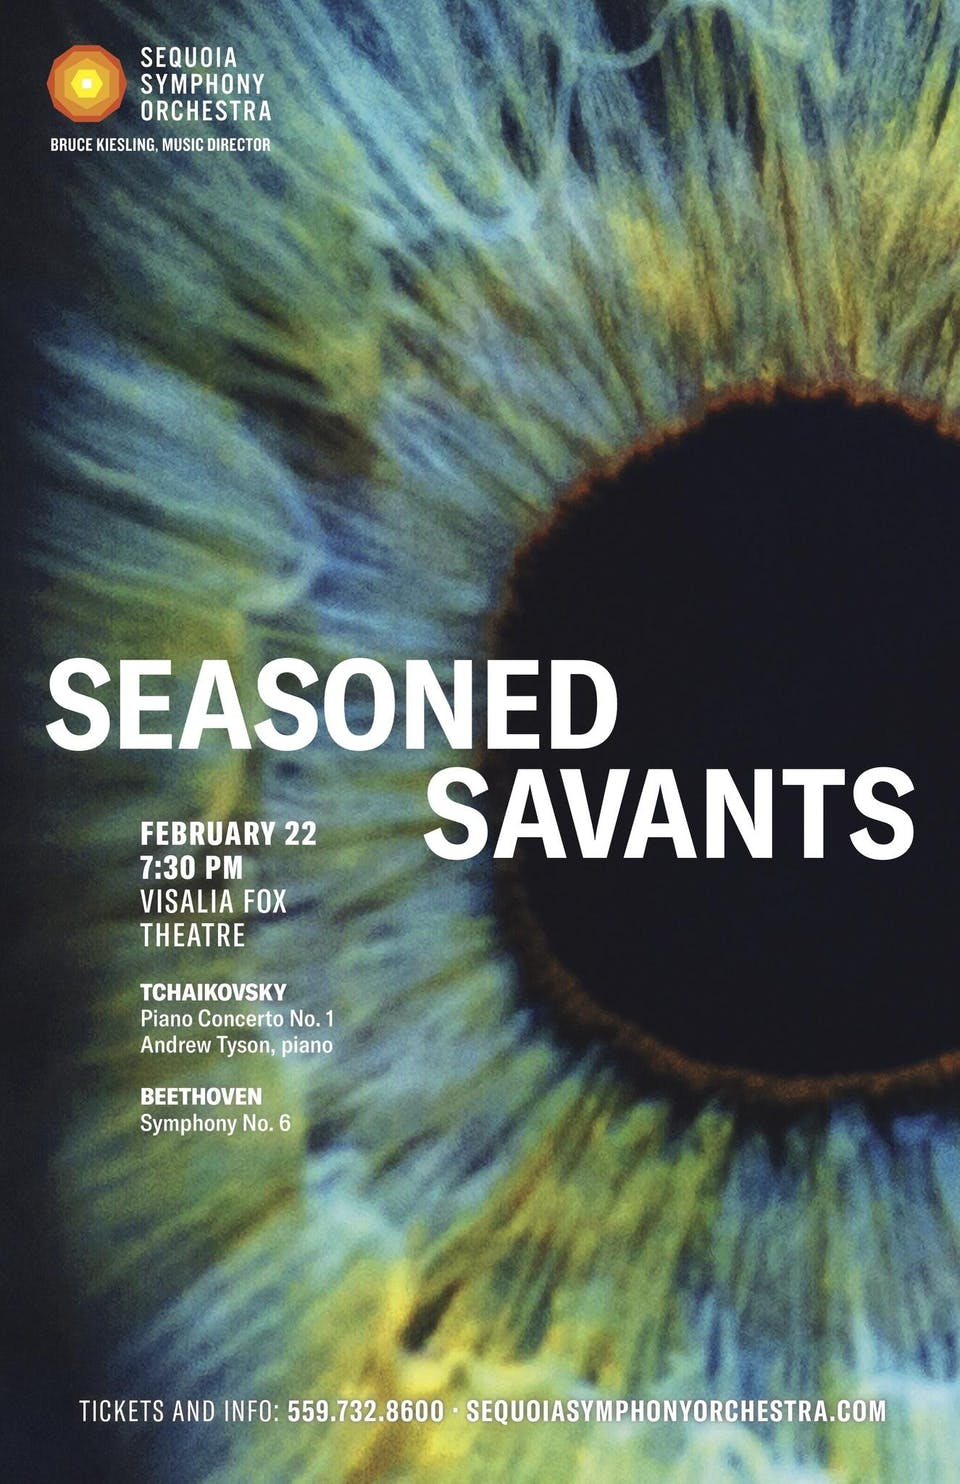 Sequoia Symphony Orchestra ~ Seasoned Savants